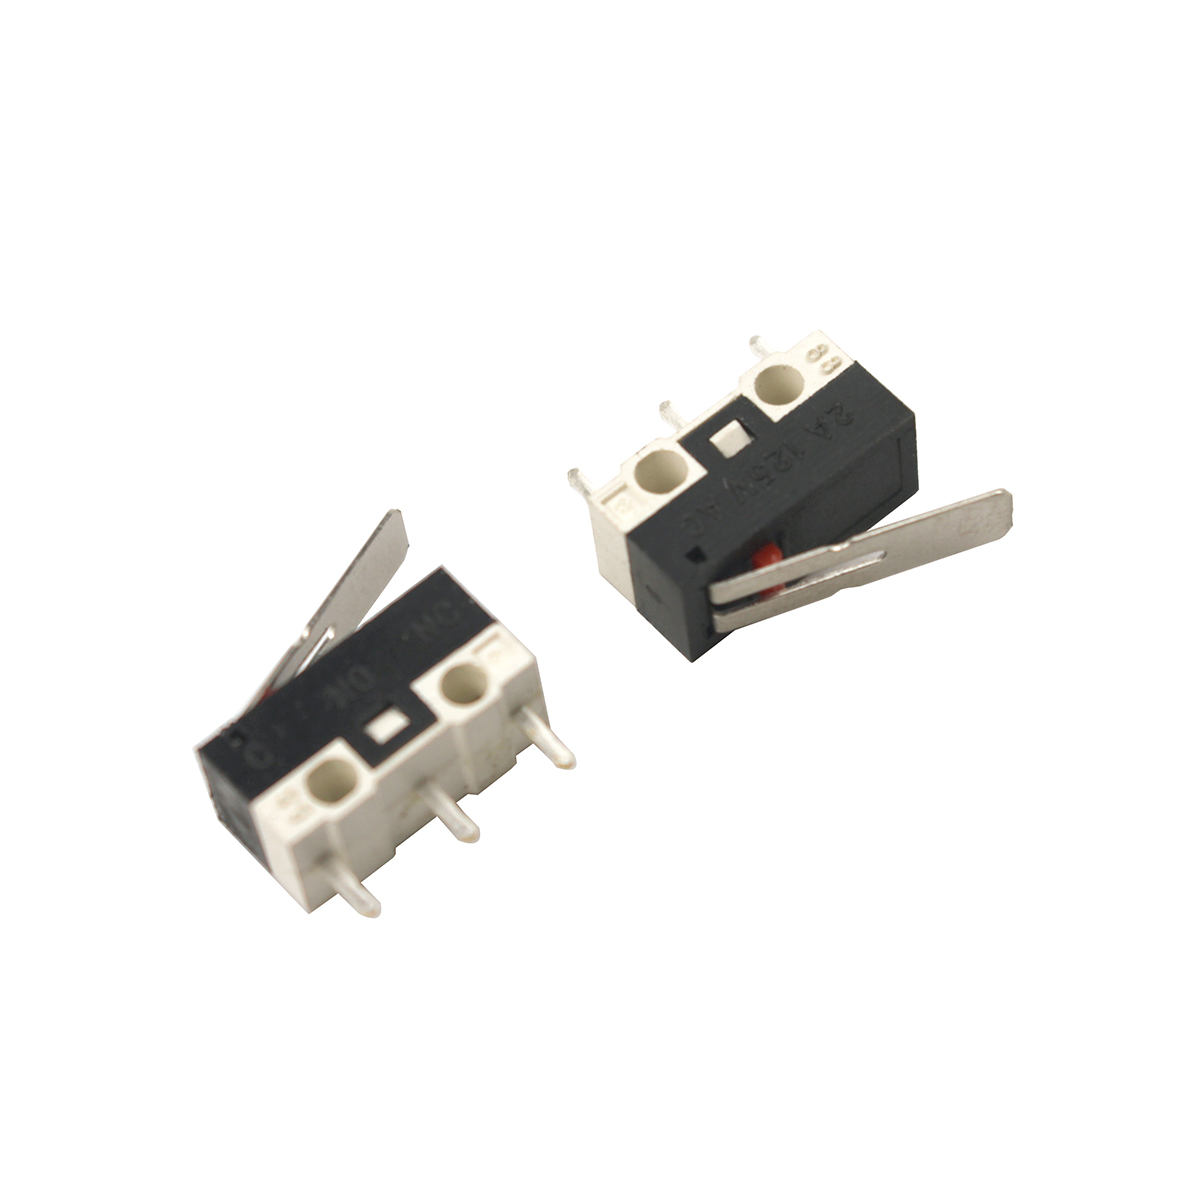 5 x 29mm Lever V4 Miniature Microswitch SPDT 5A Micro Switch